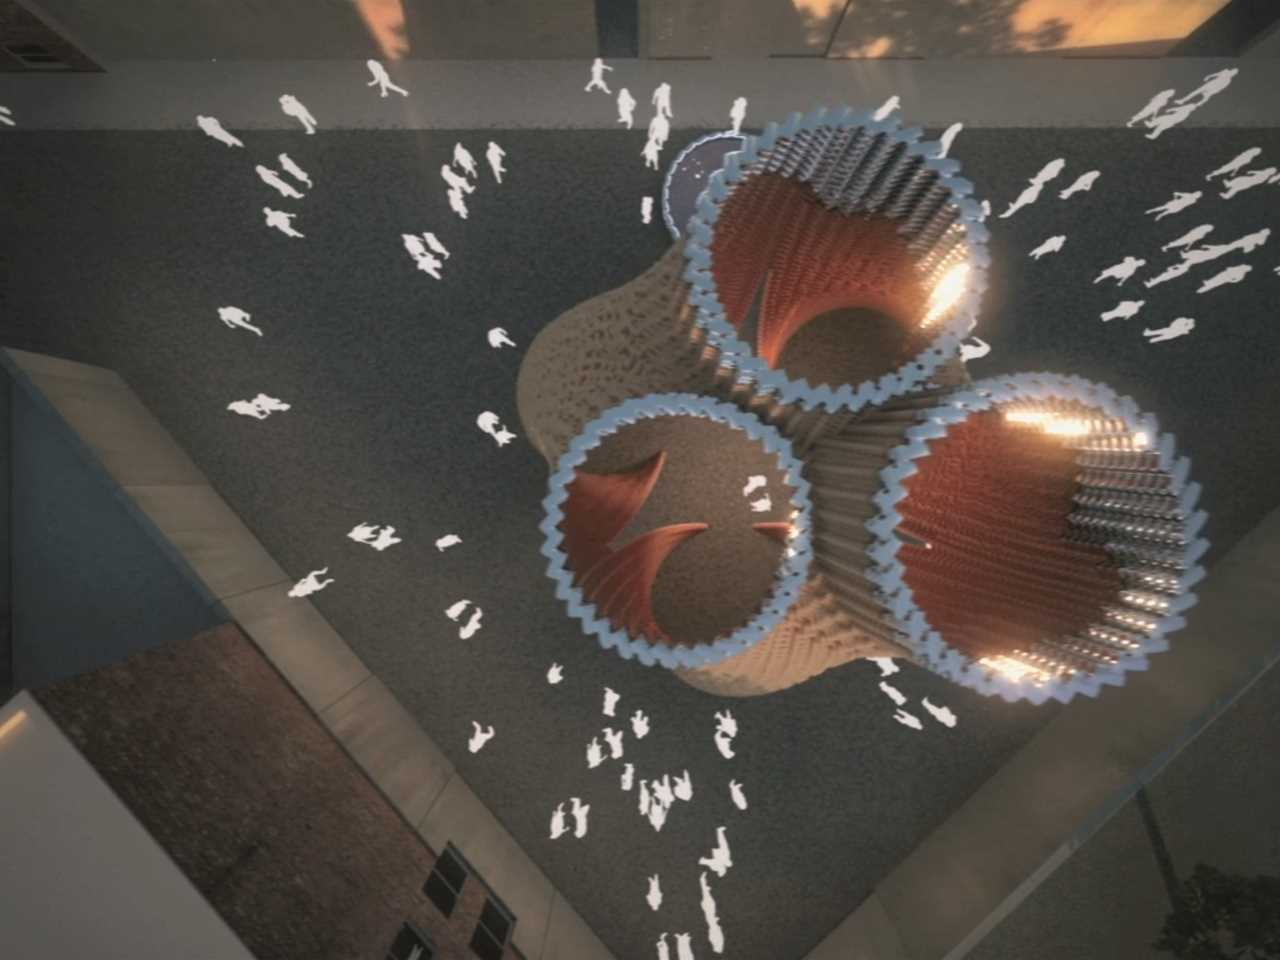 Project entry 2014 North America – Hy-Fi: Zero carbon emissions compostable structure, New York, NY